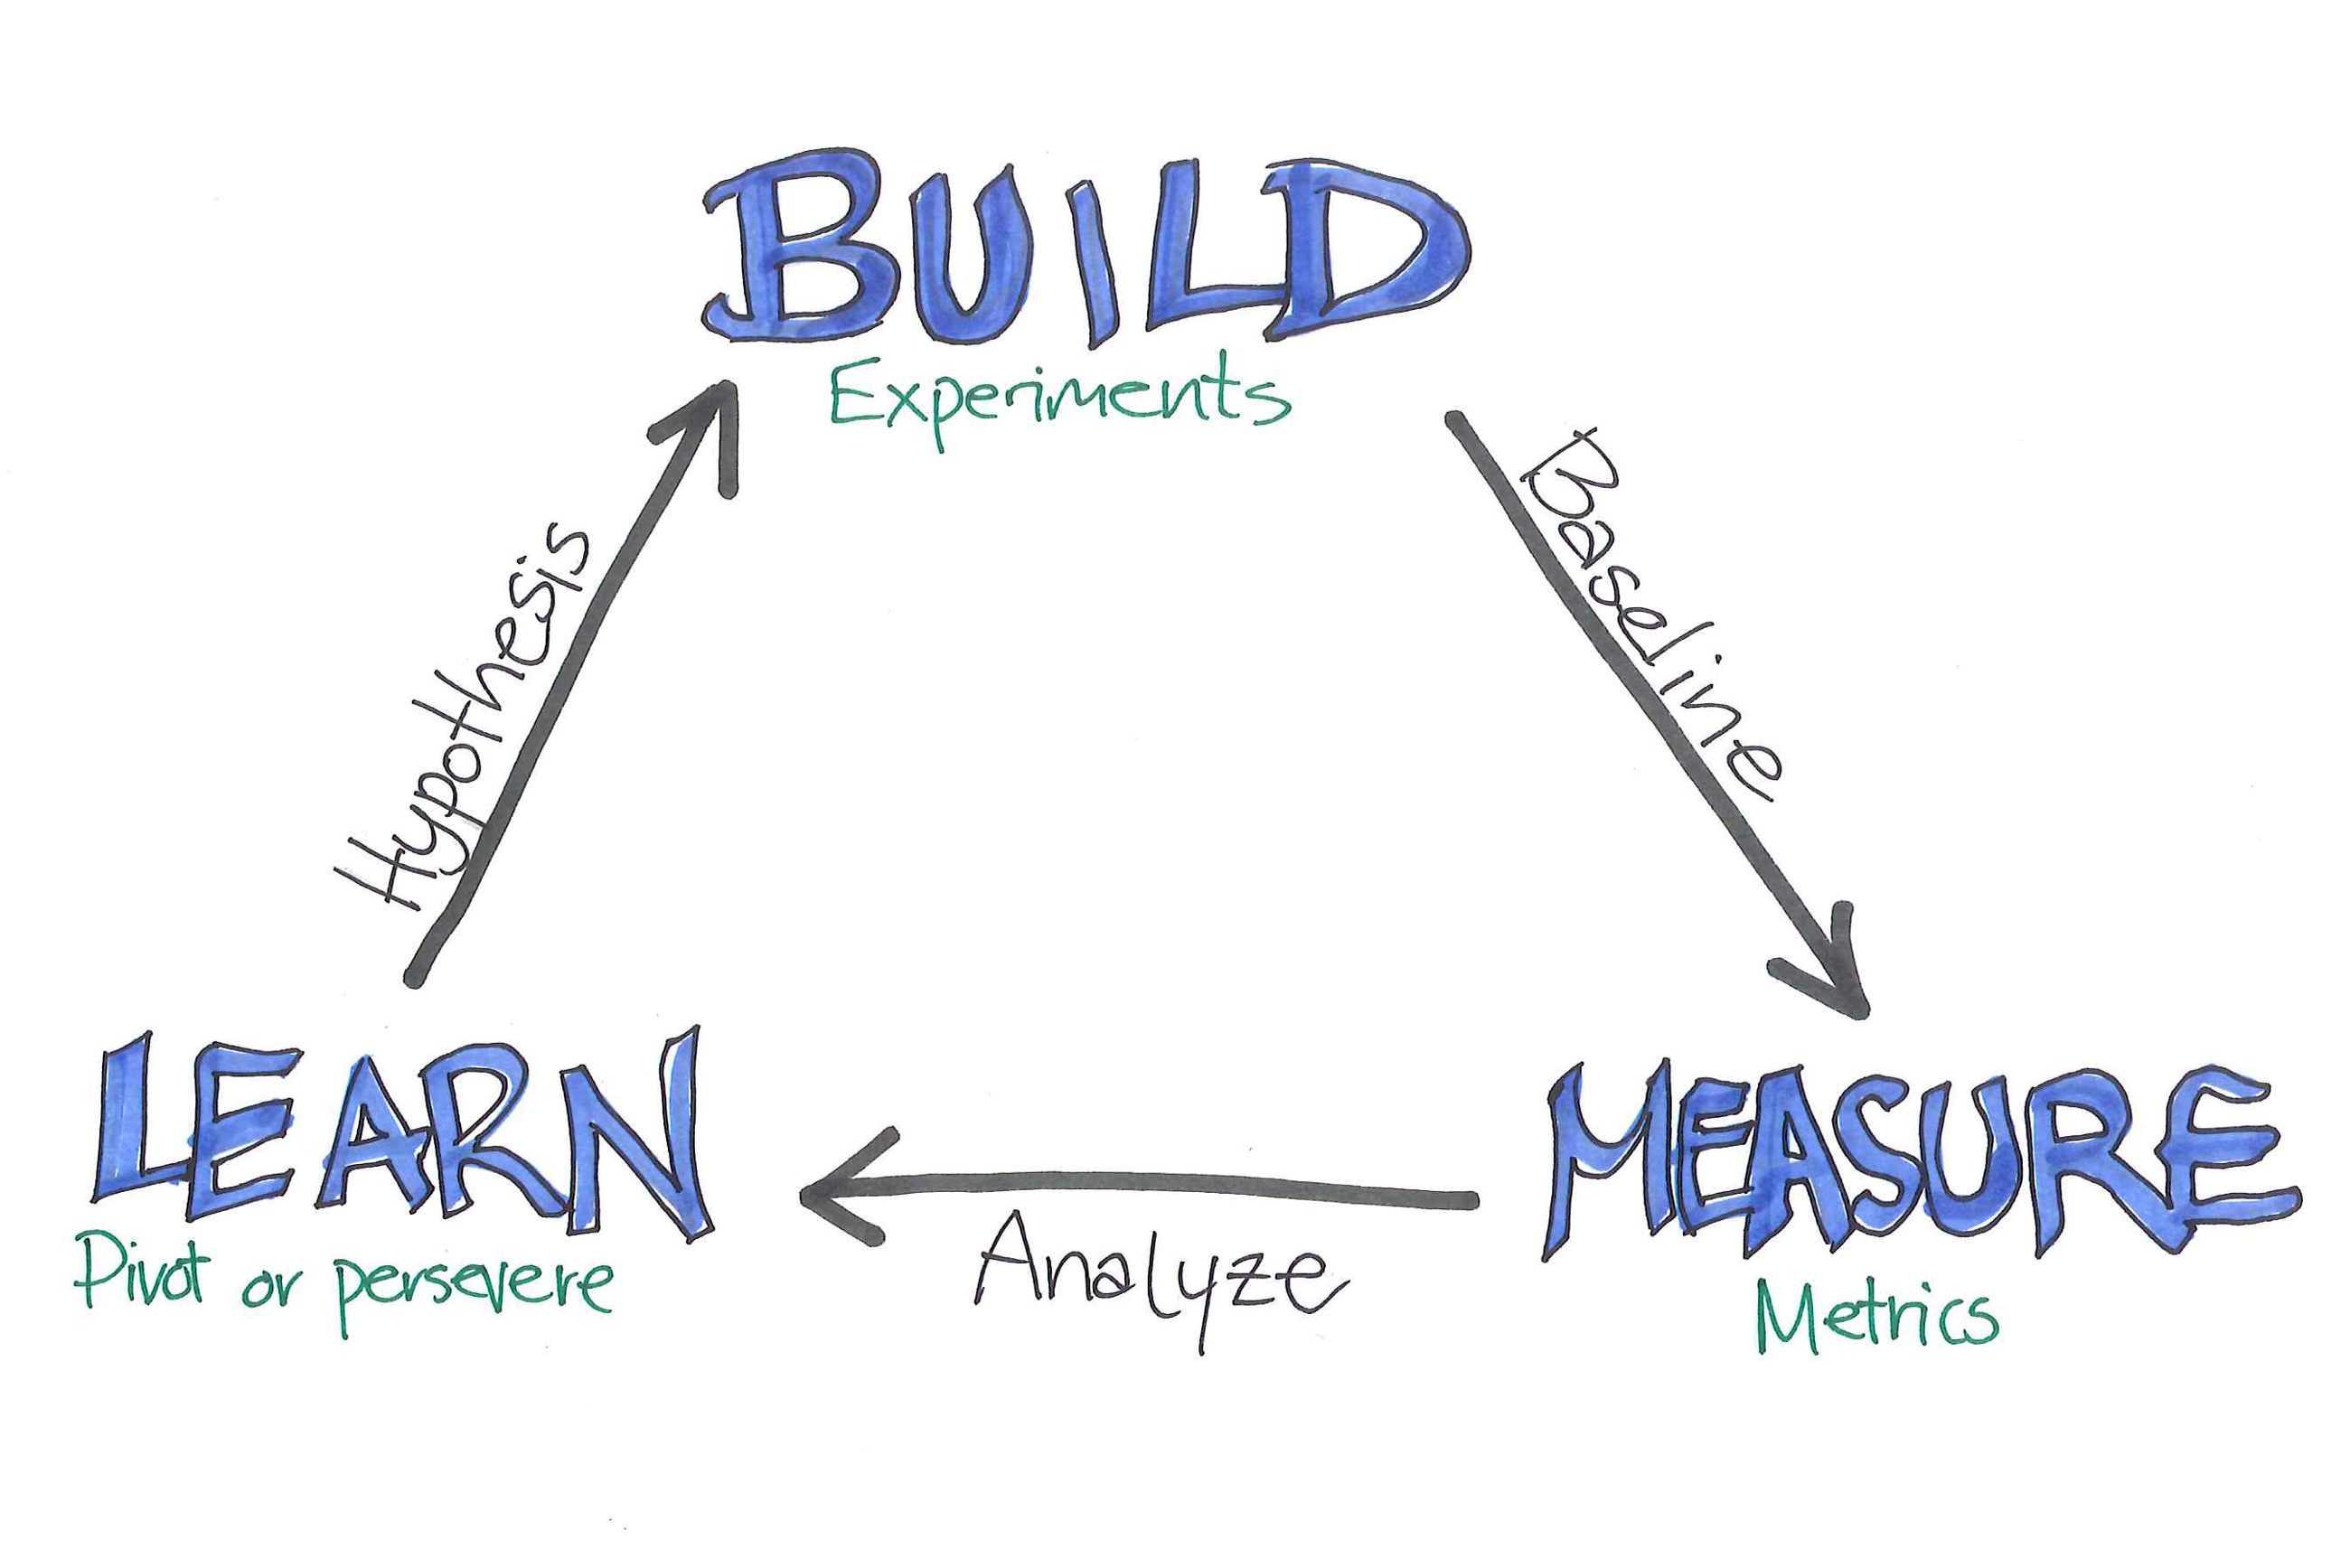 /launch-your-product-training-like-a-lean-startup-644a24143ce0 feature image